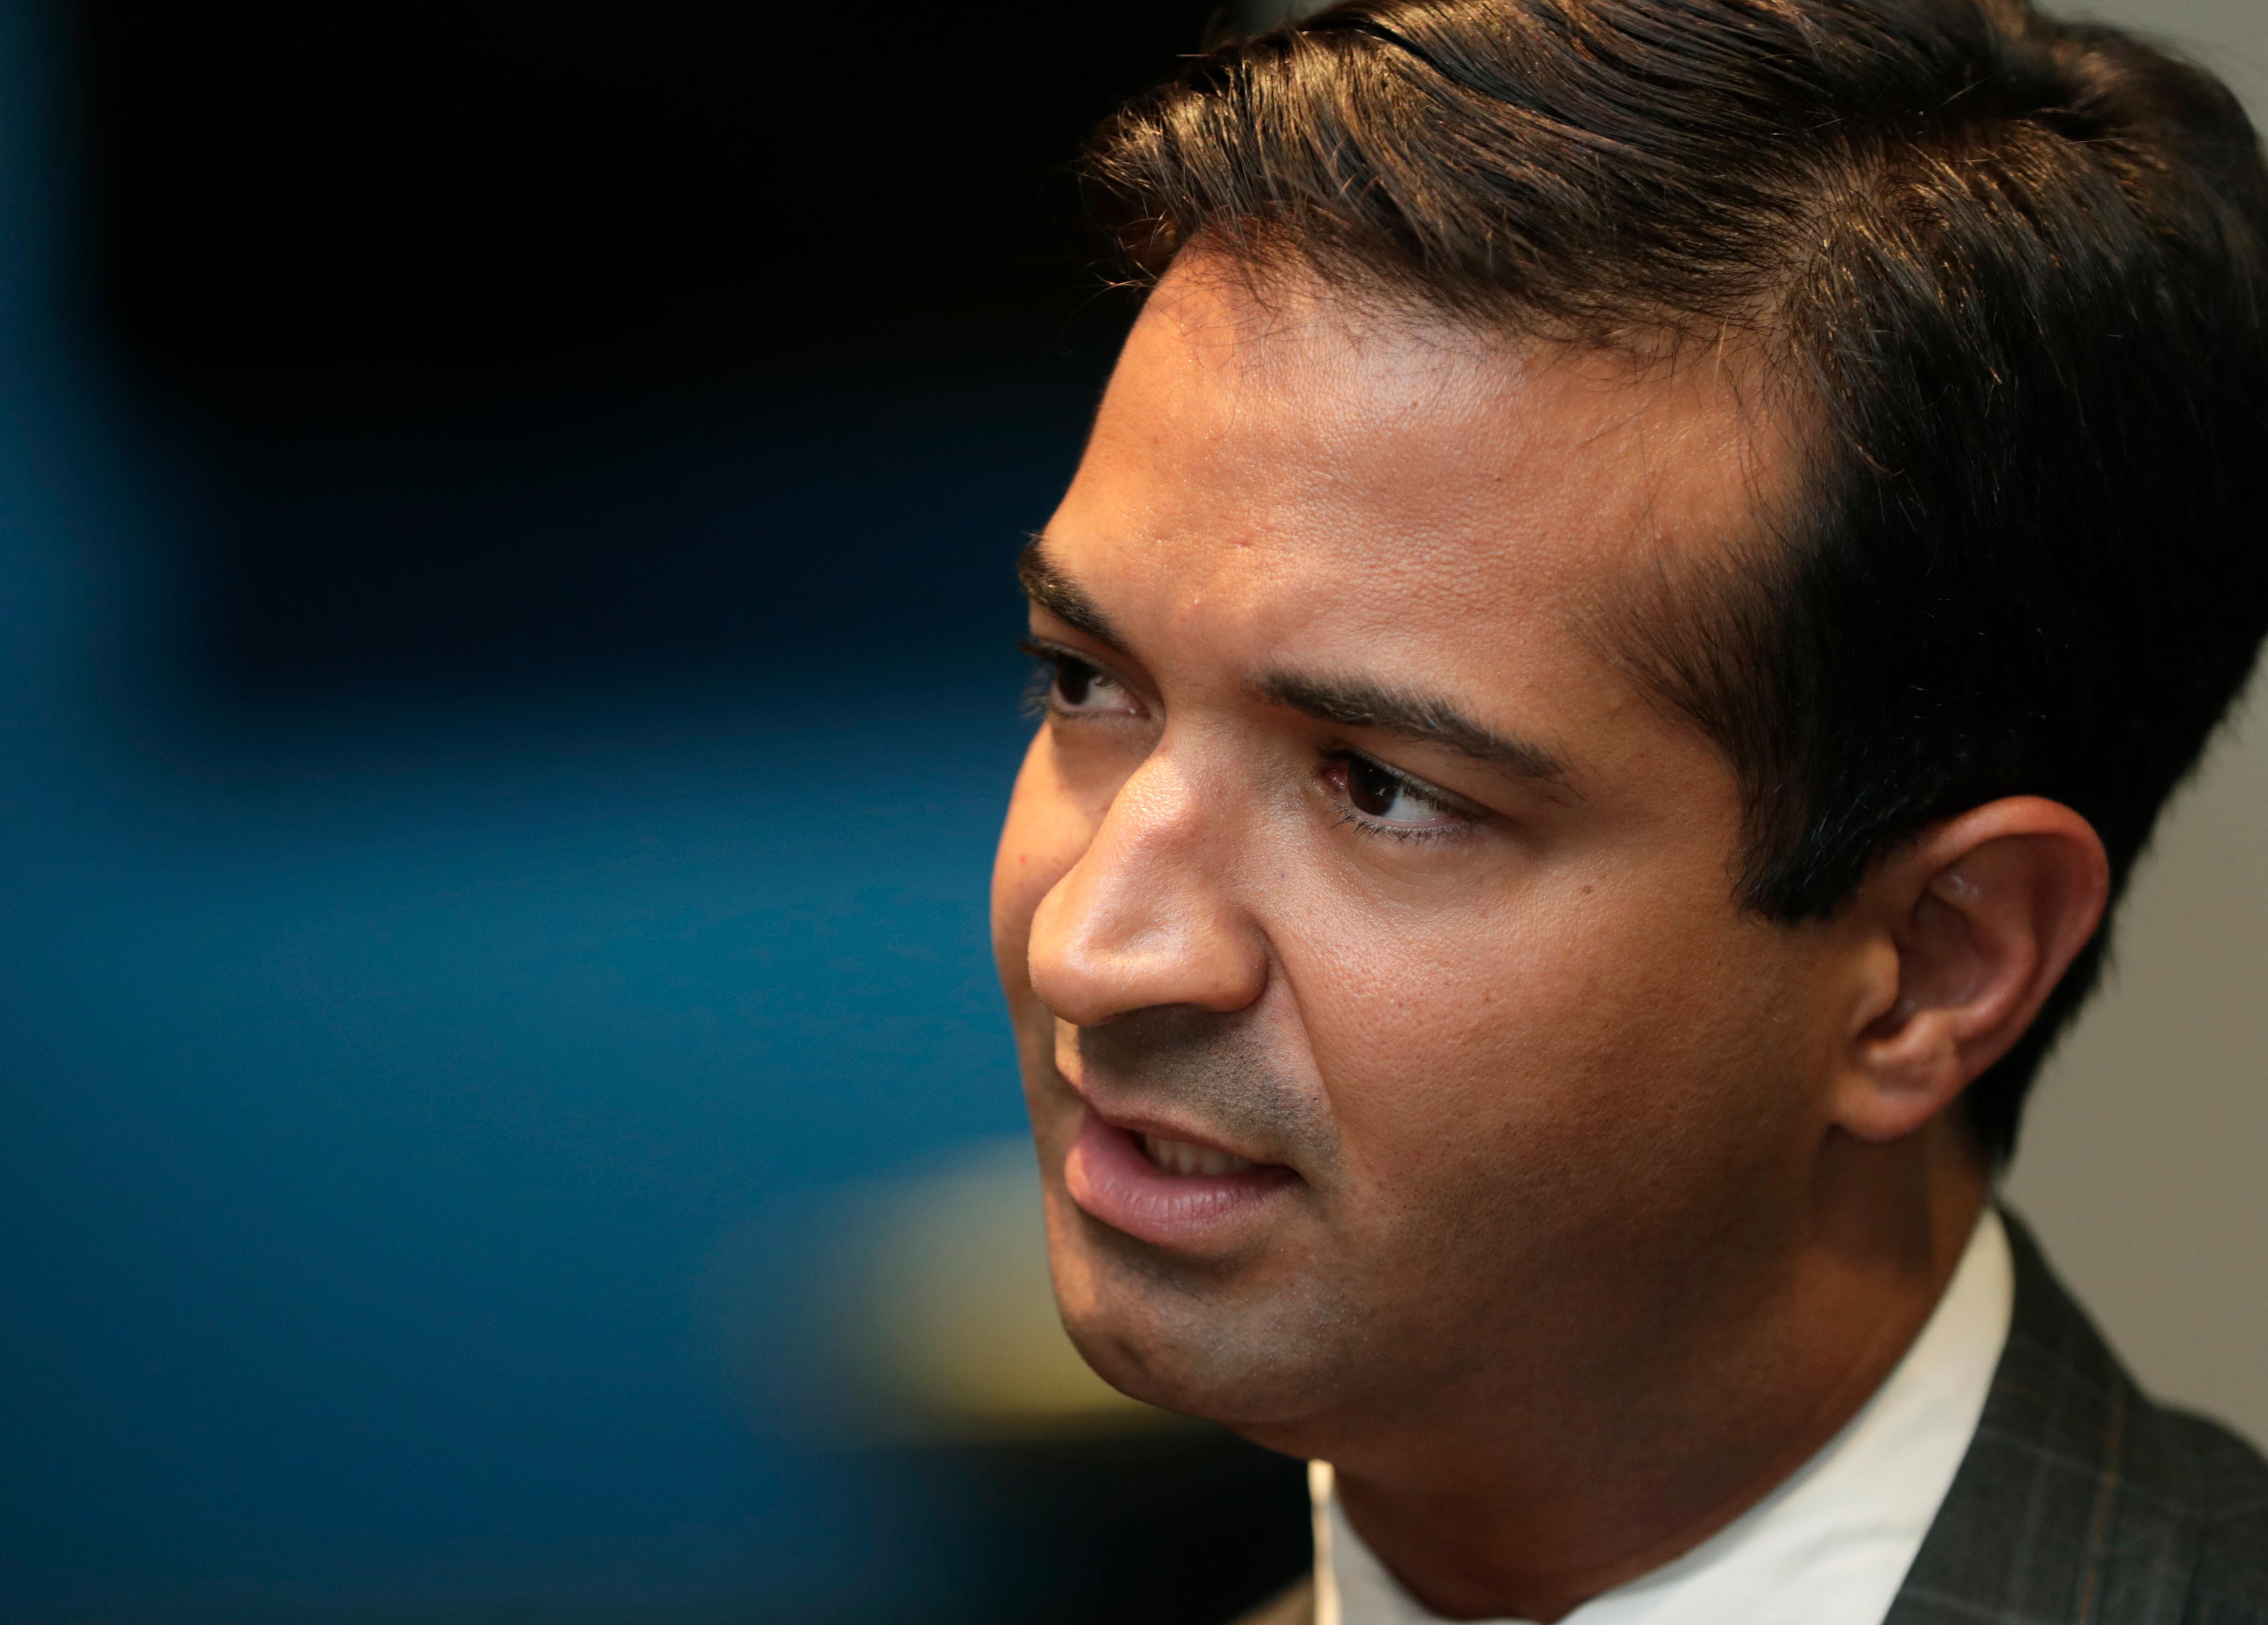 In this Tuesday, May 29, 2018 photo, Rep. Carlos Curbelo, R-Fla., speaks during an interview in Homestead, Fla.{ } (AP Photo/Lynne Sladky)